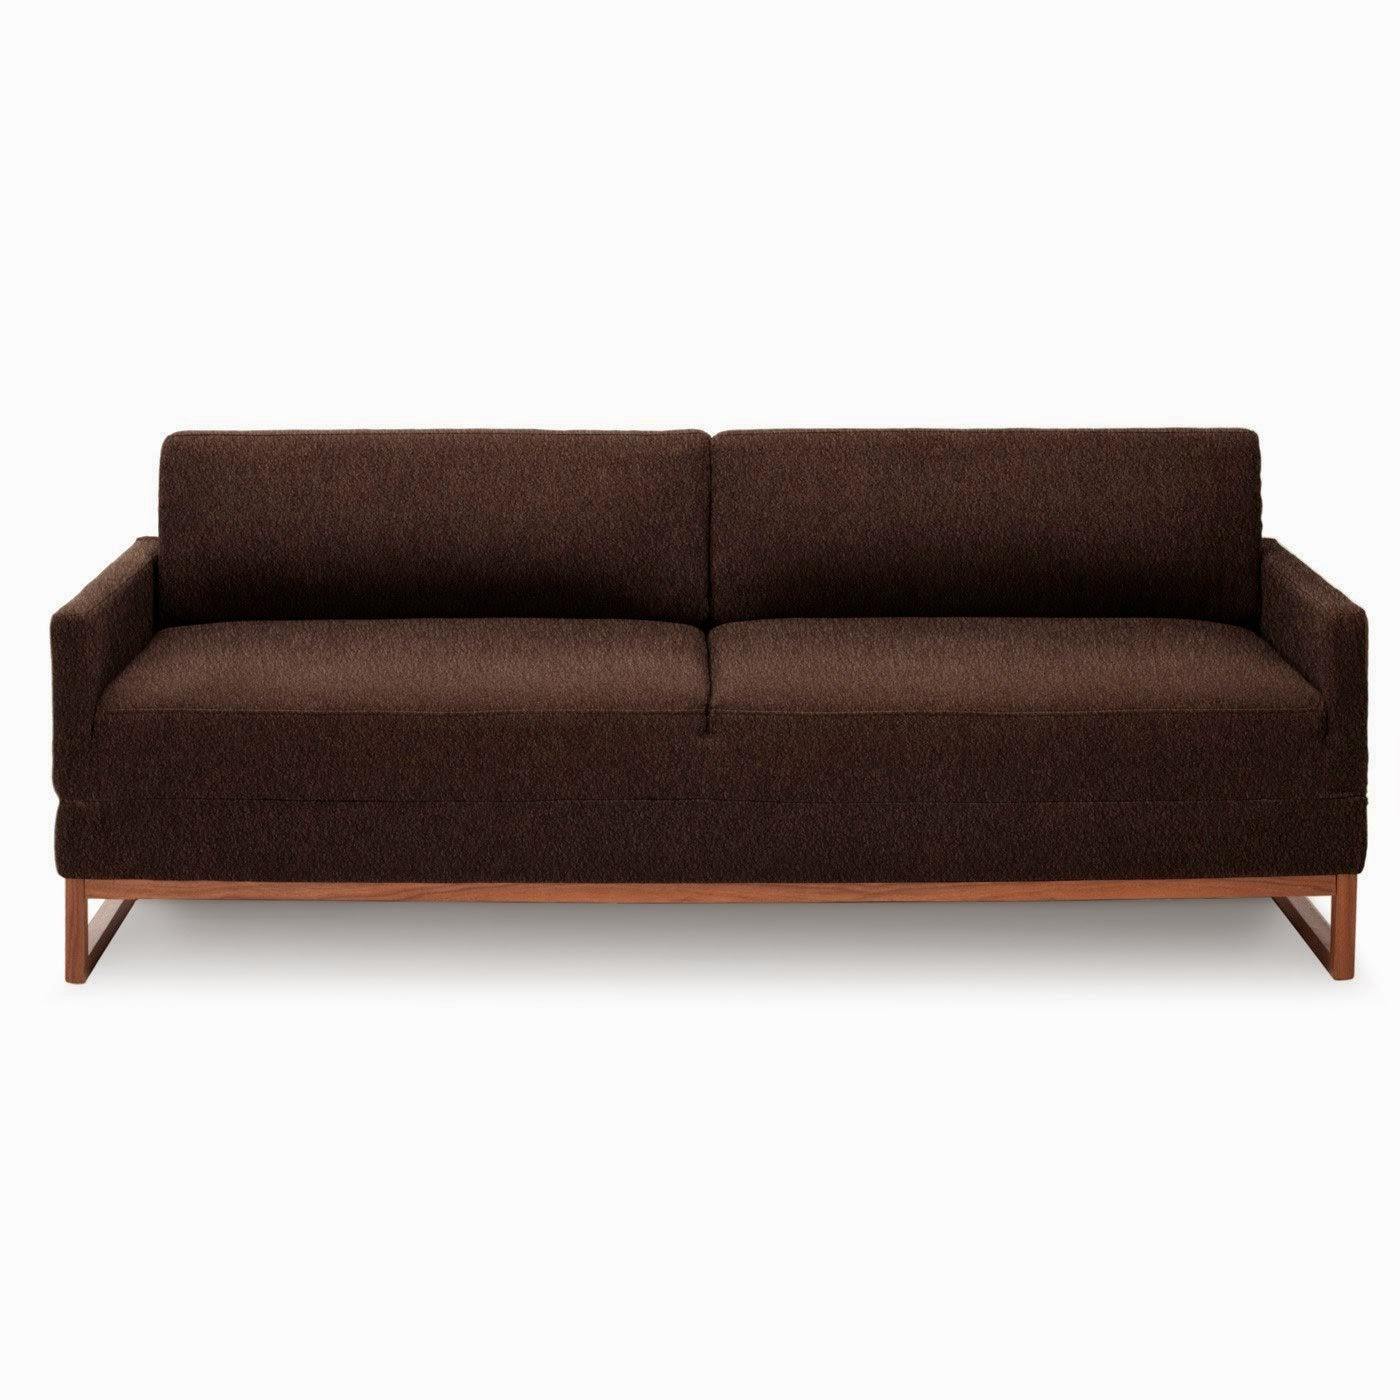 Convertible Sofa Leather Convertible Sofa